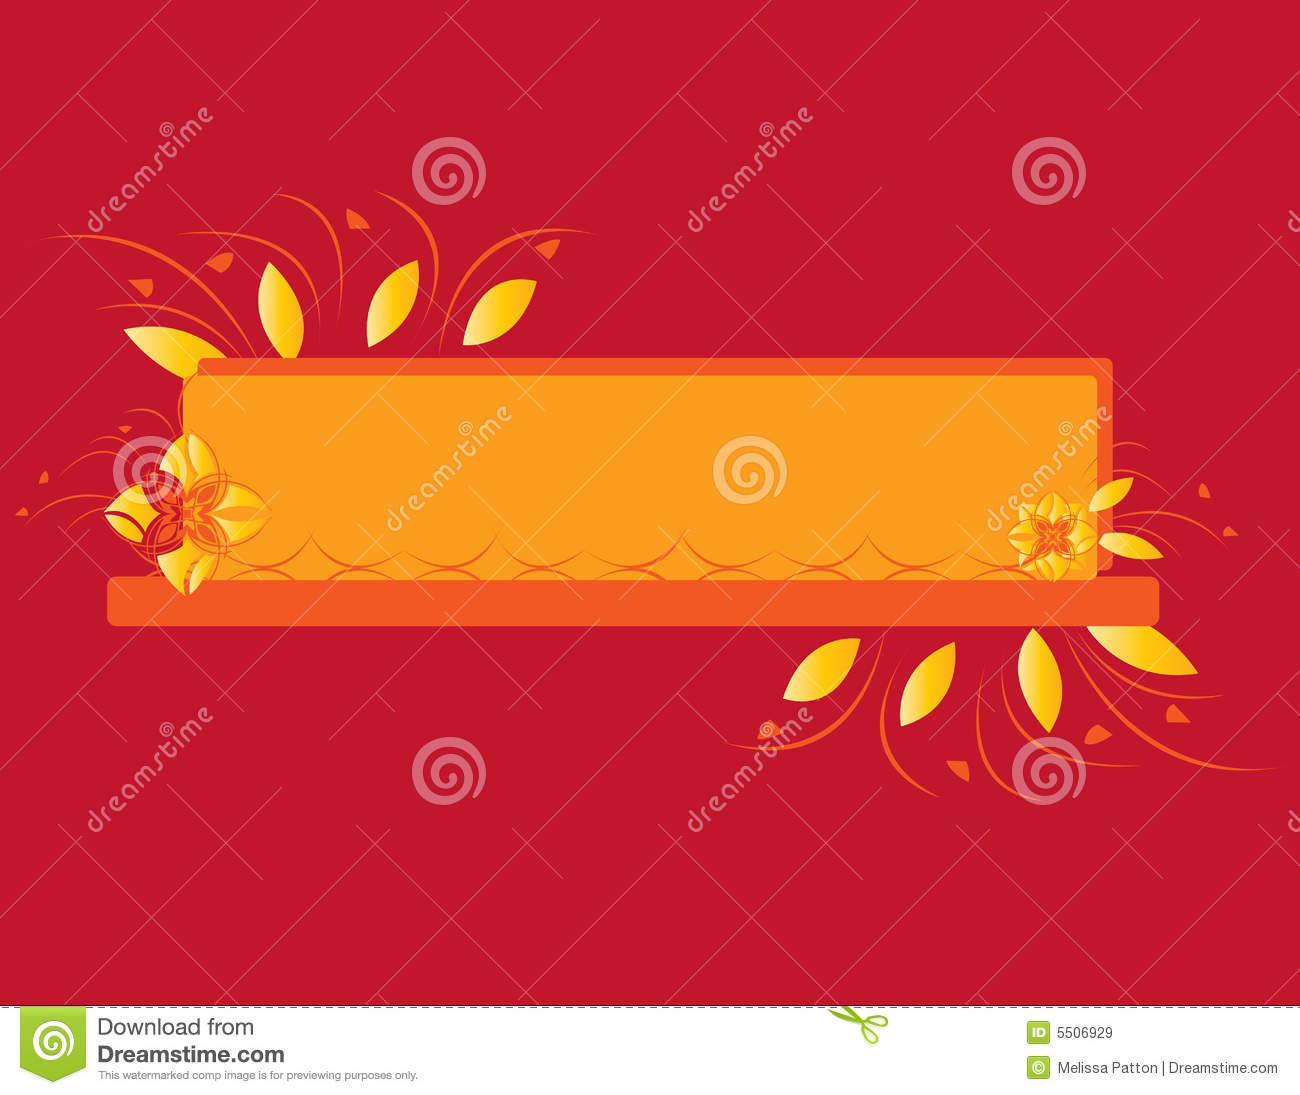 Red-Orange Yellow Flowers Design